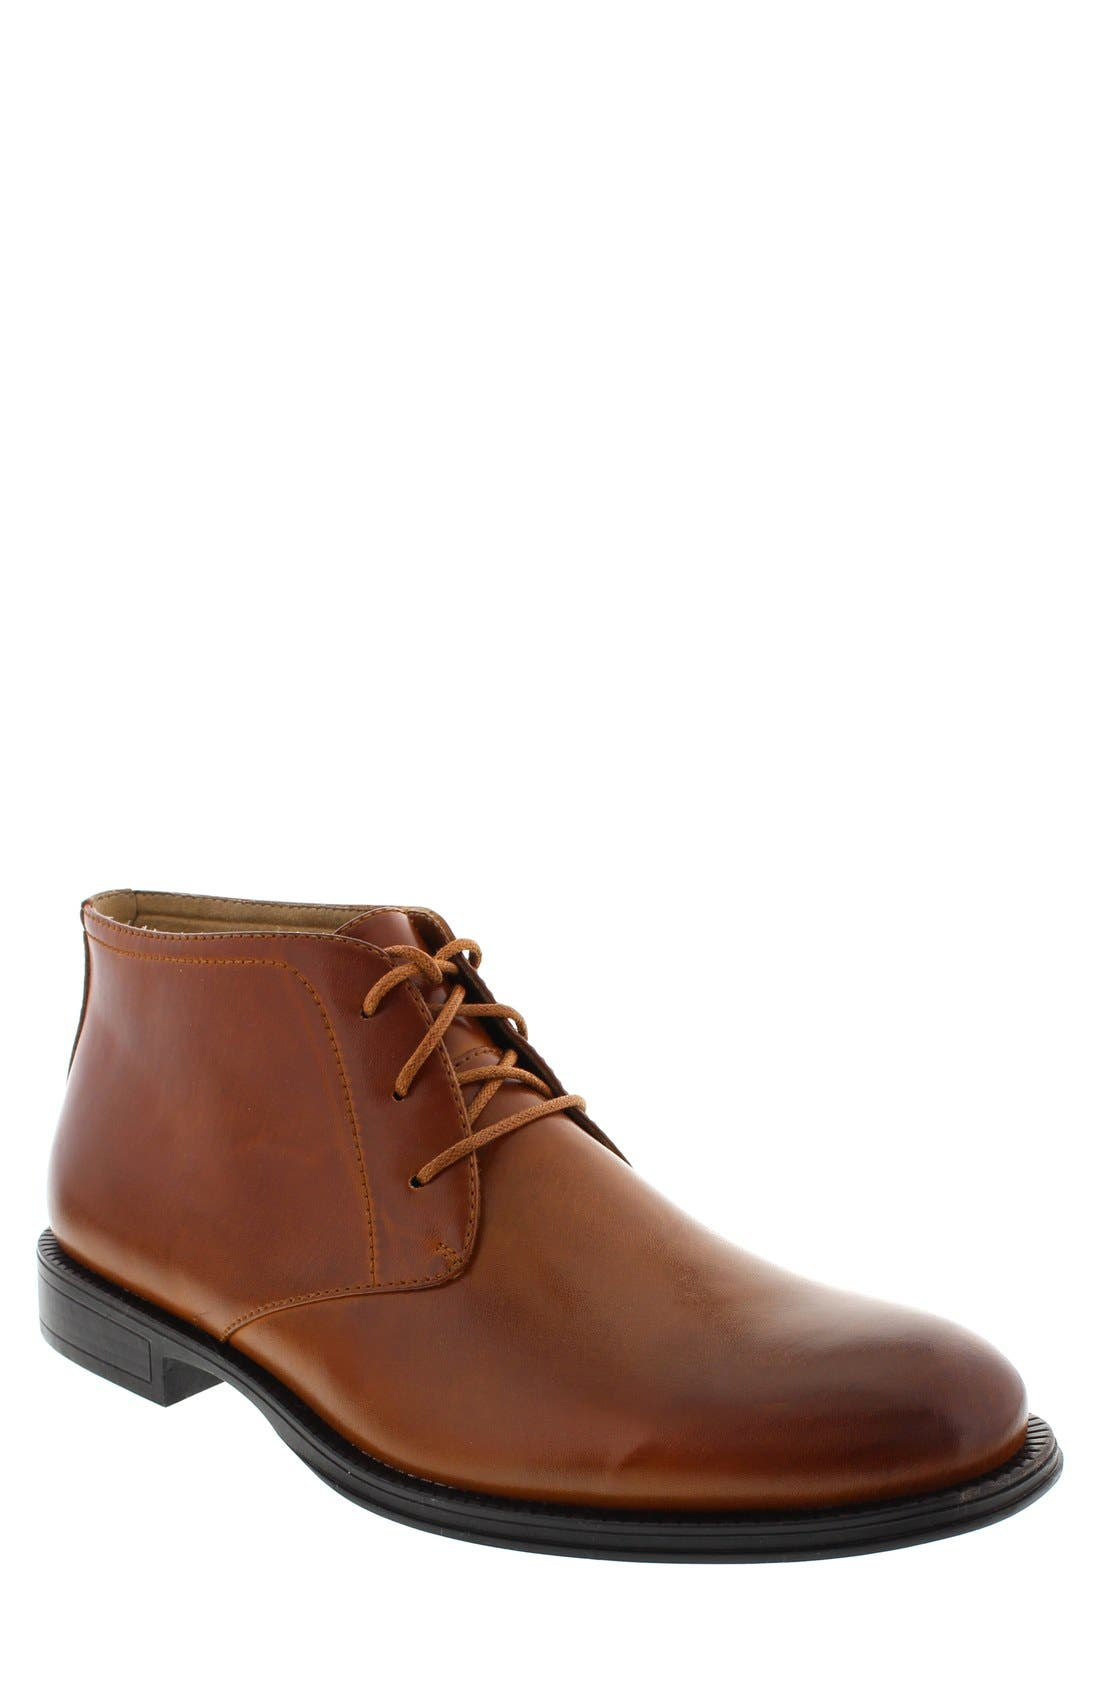 DEER STAGS 'Mean' Leather Chukka Boot